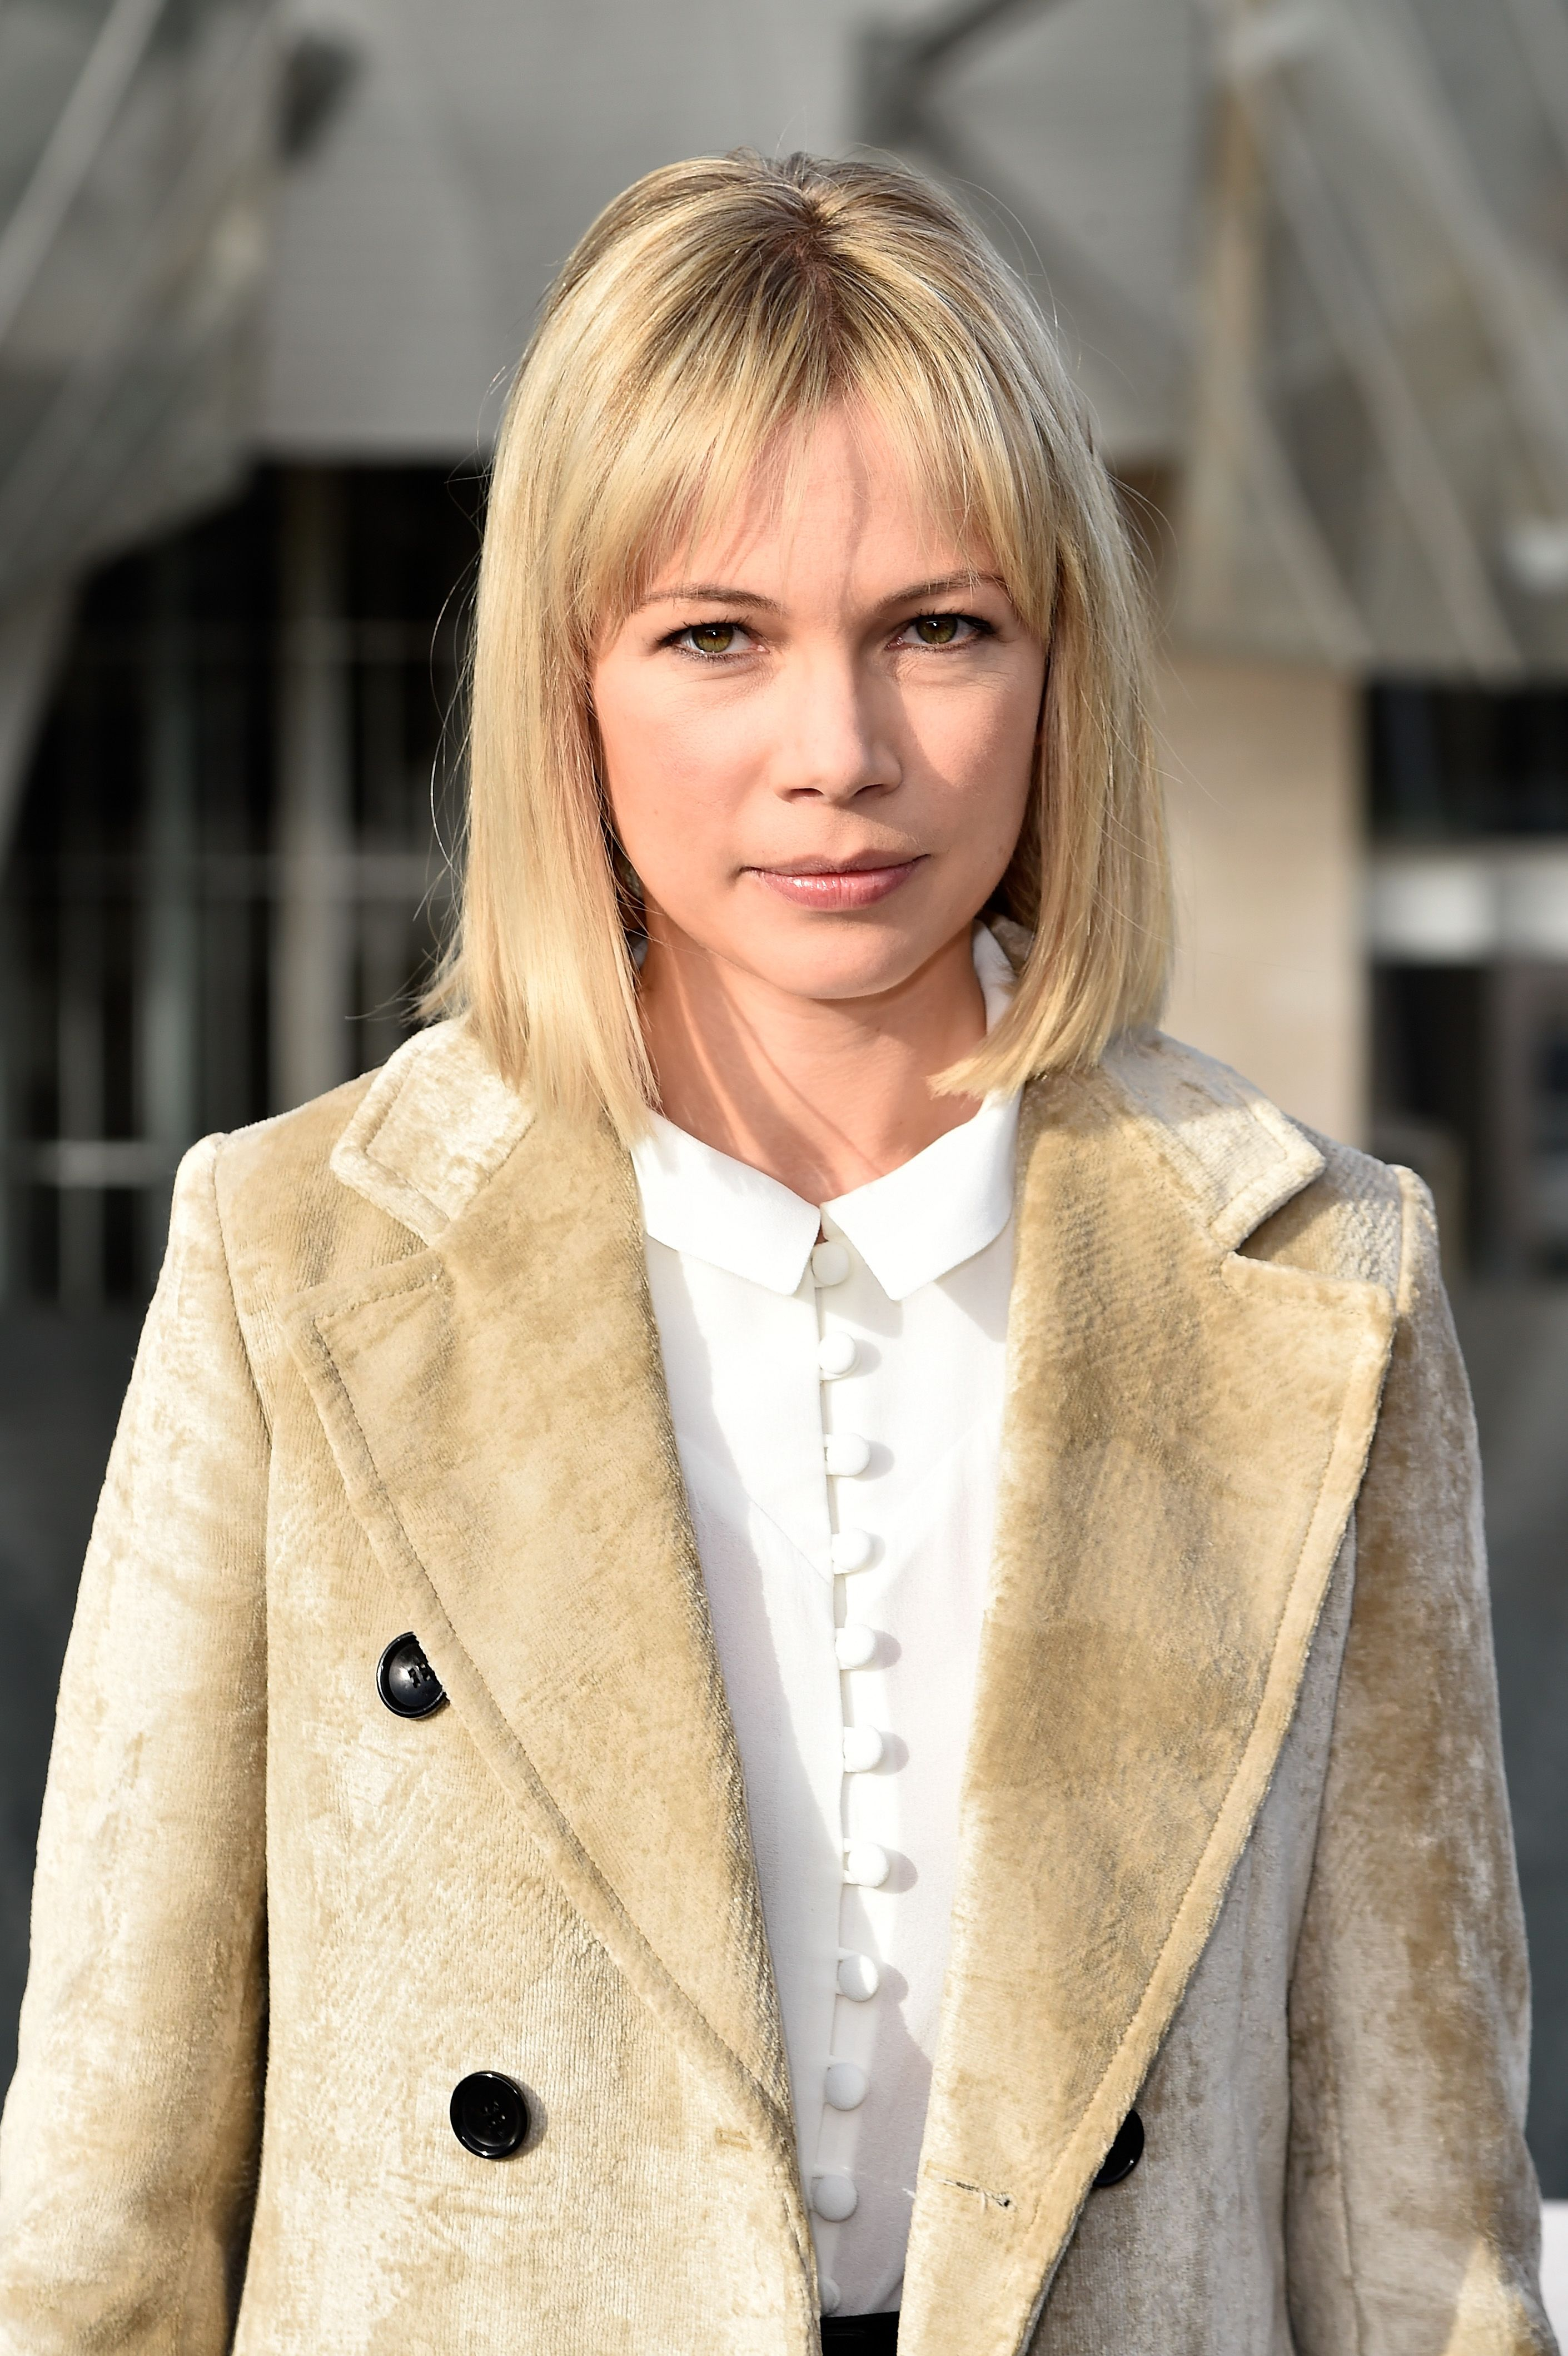 Michelle Williams debuted her new lob that s a long bob FYI